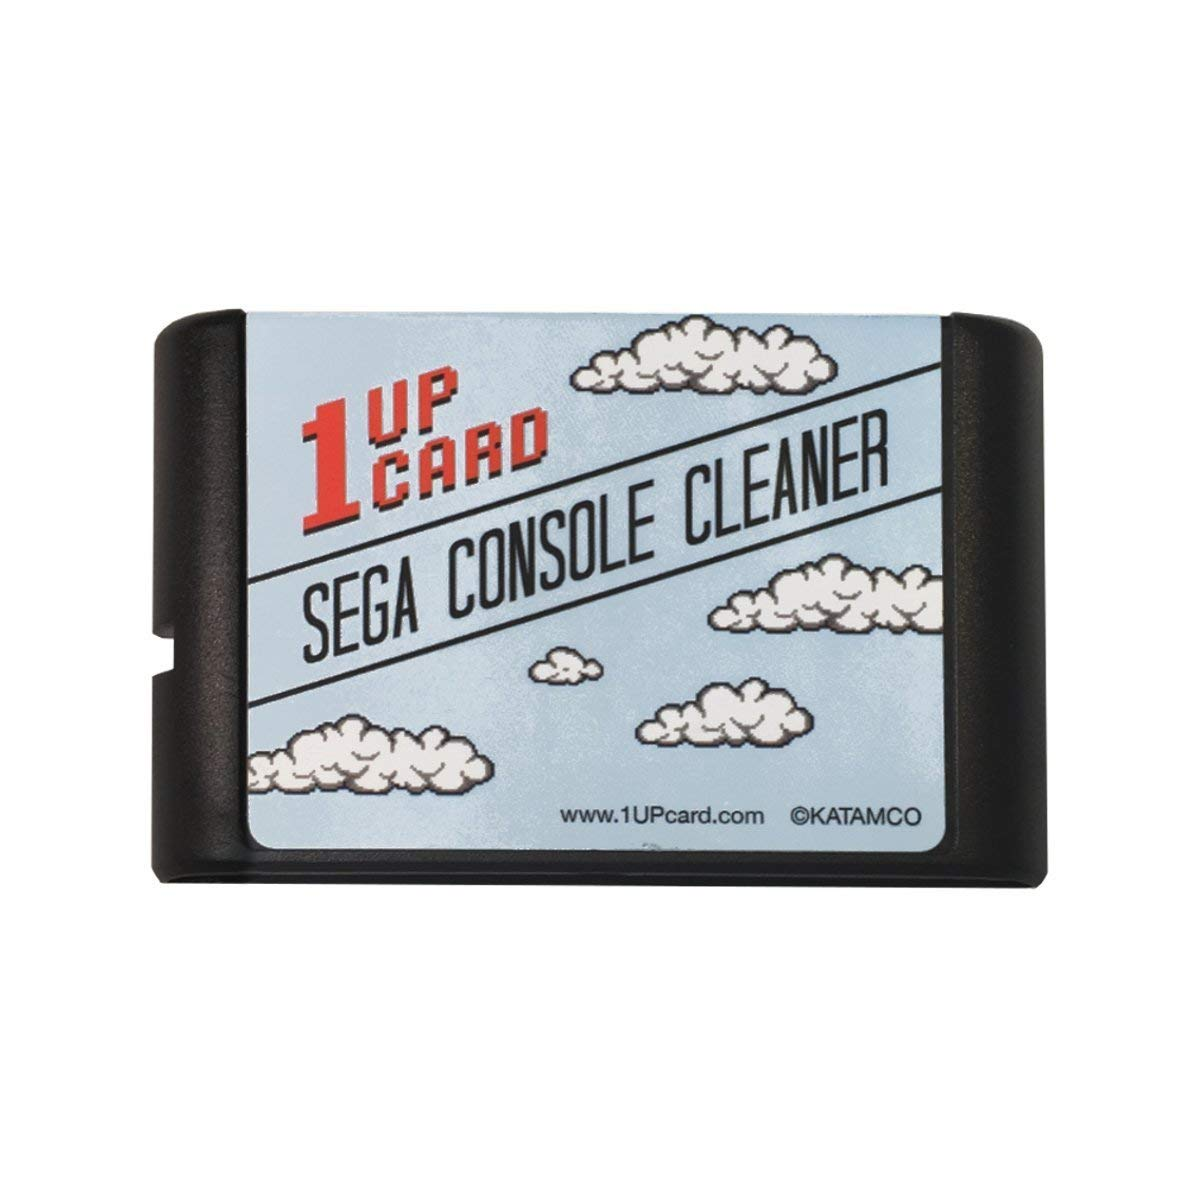 SEGA Genesis / Mega Drive Console Cleaner by 1UPCard